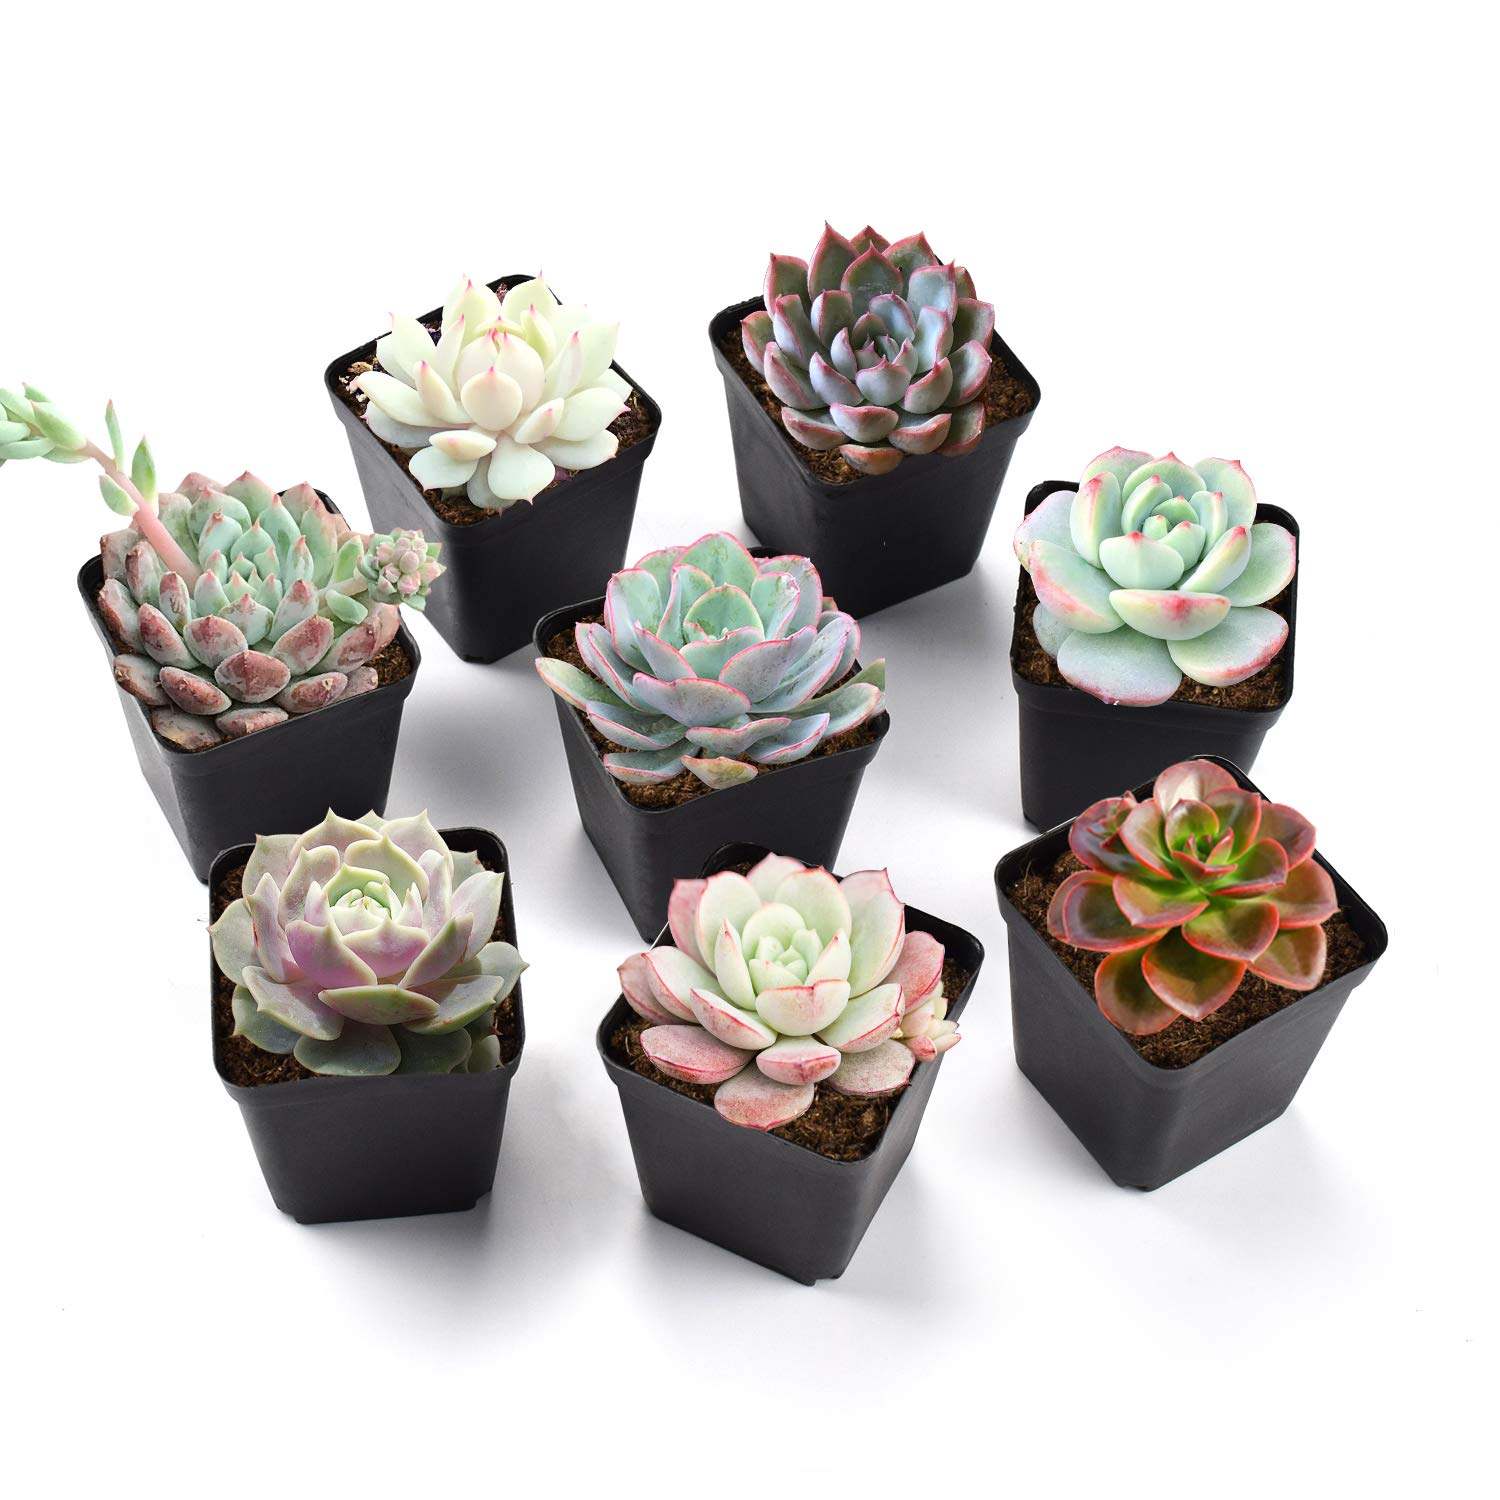 Succulent Plants, 8 Pack of Assorted Rosettes, Fully Rooted in 2'' Planter Pots with Soil, Rare 8 Varieties, Unique Real Live Indoor Succulents/Cactus Décor by The Next Gardener